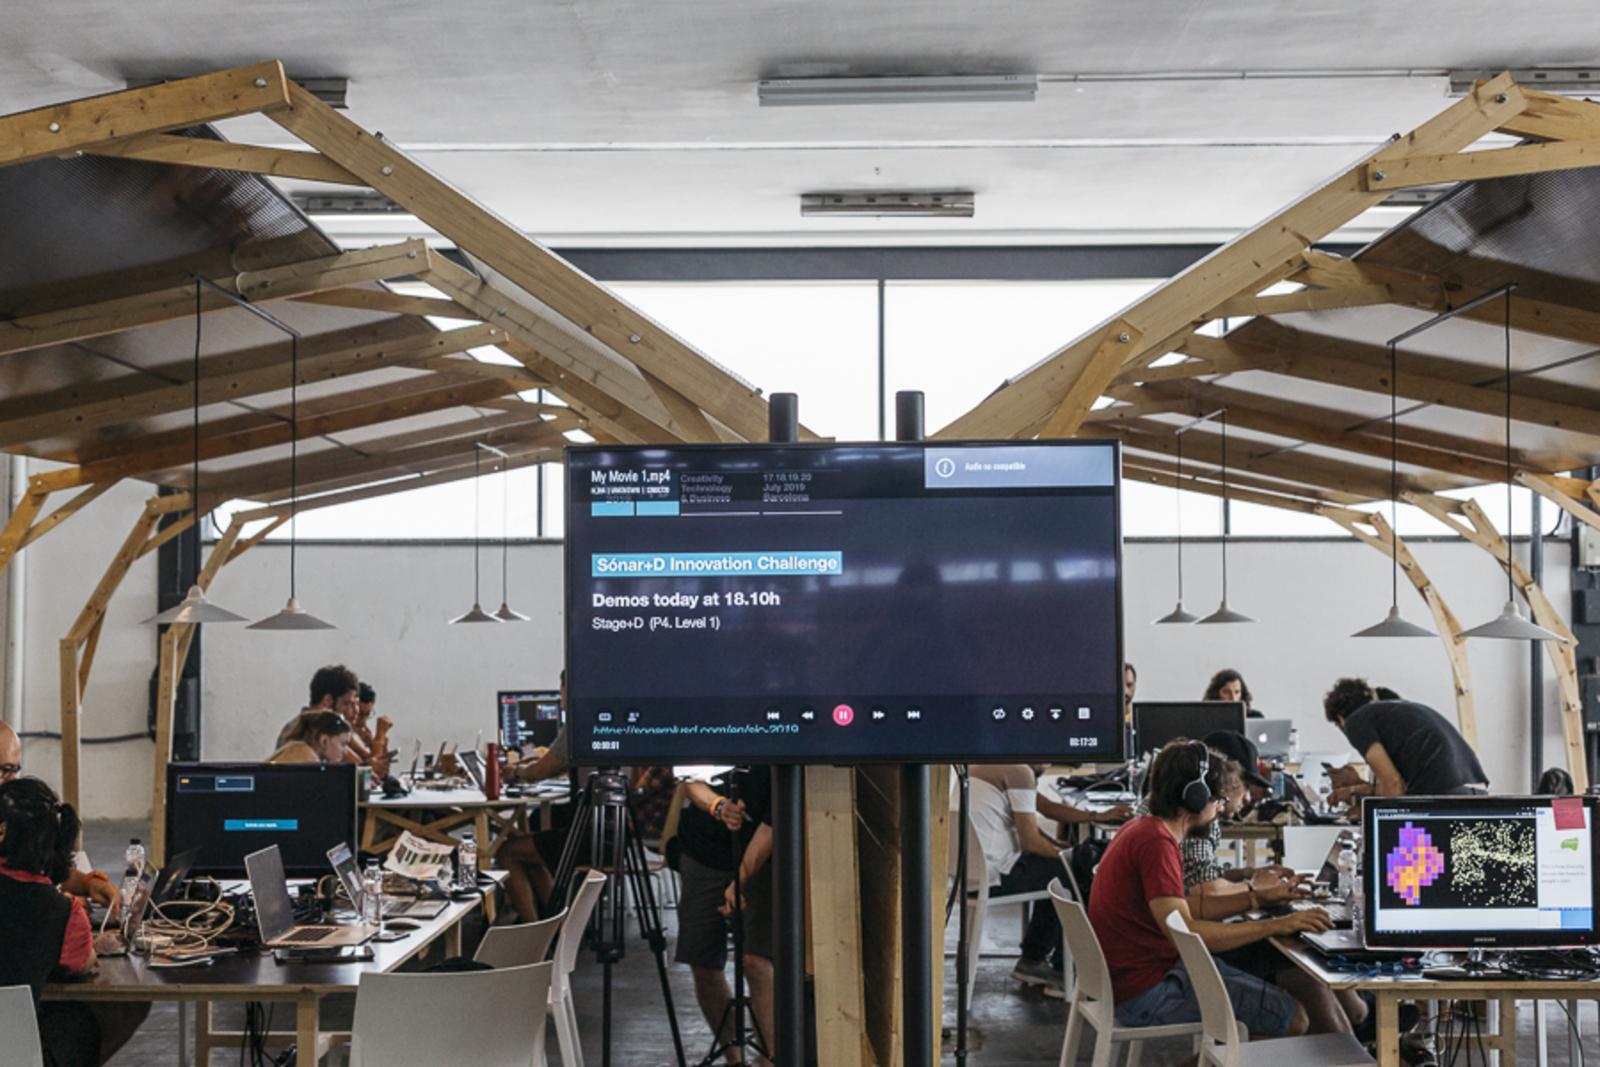 Sónar+D Innovation Challenge Demos